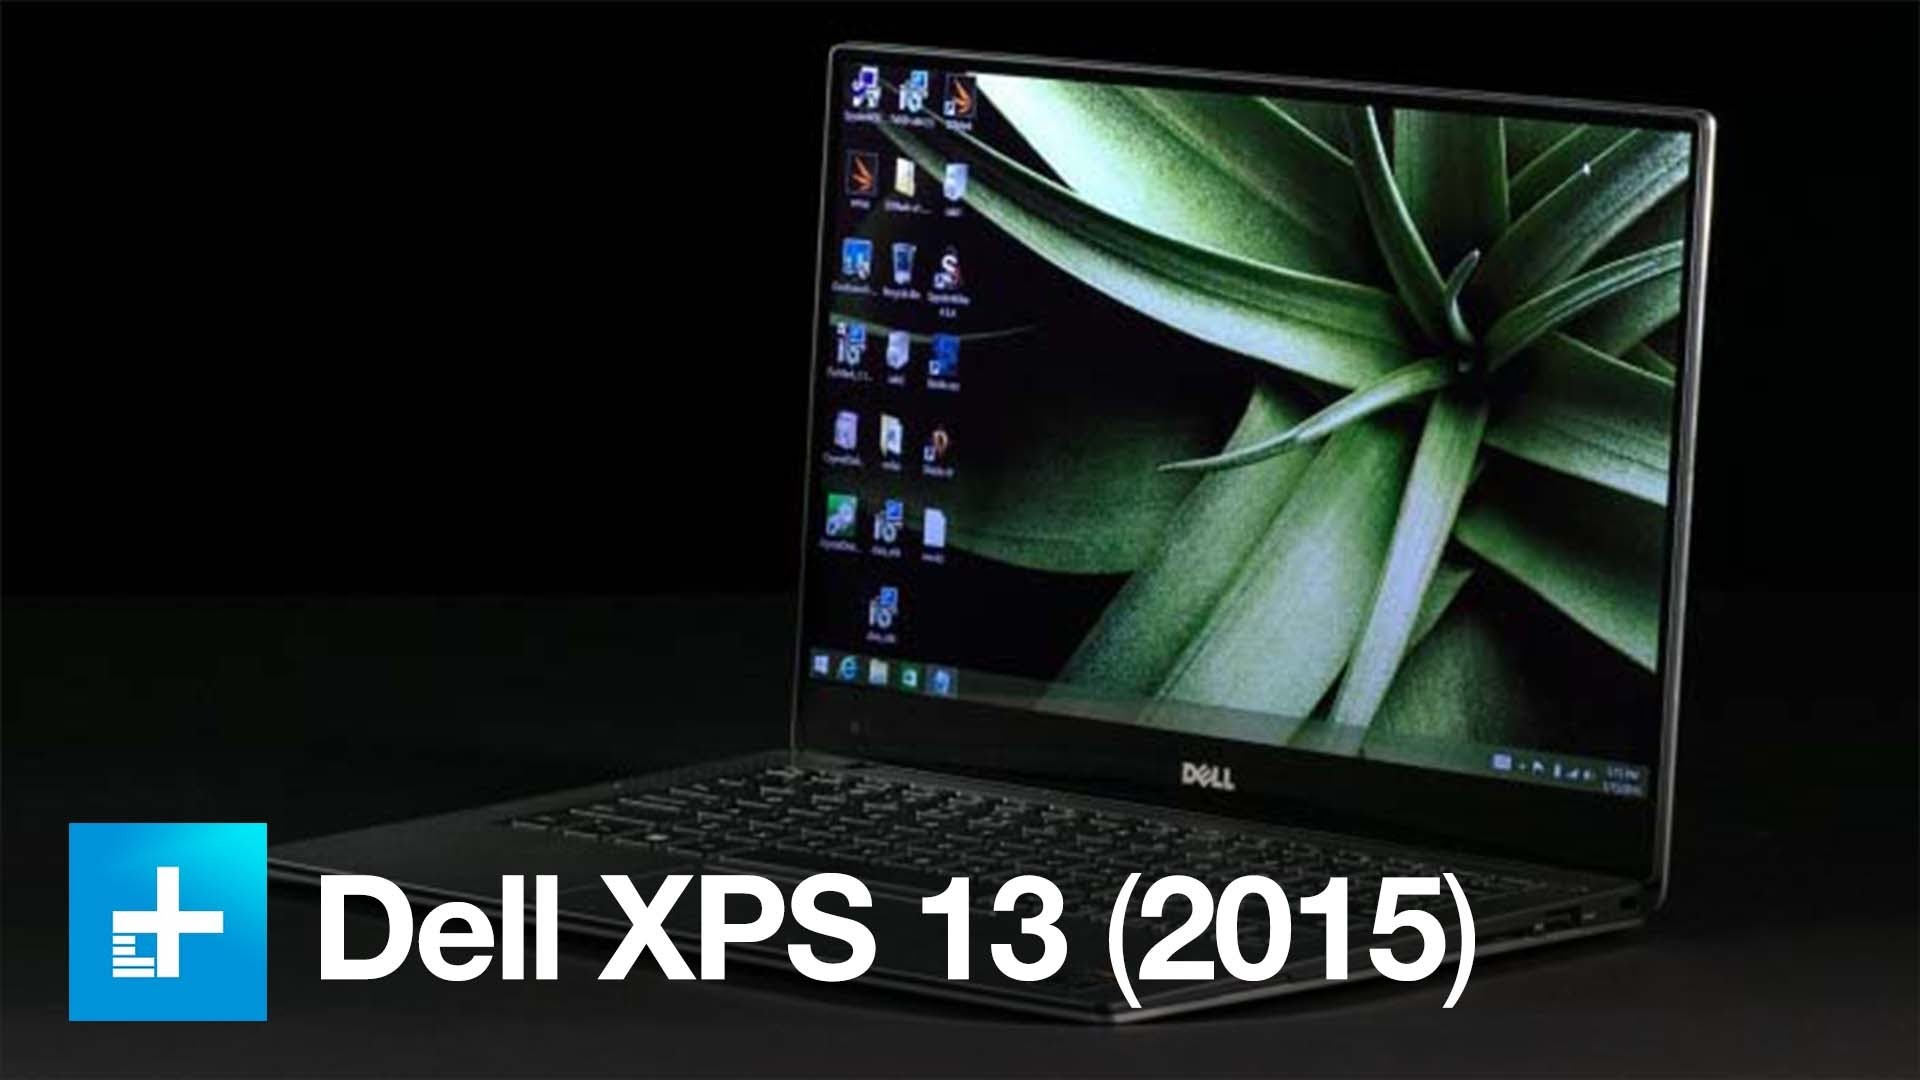 1920x1080 Dell Studio XPS Wallpaper #77V7Z4A ( Px)